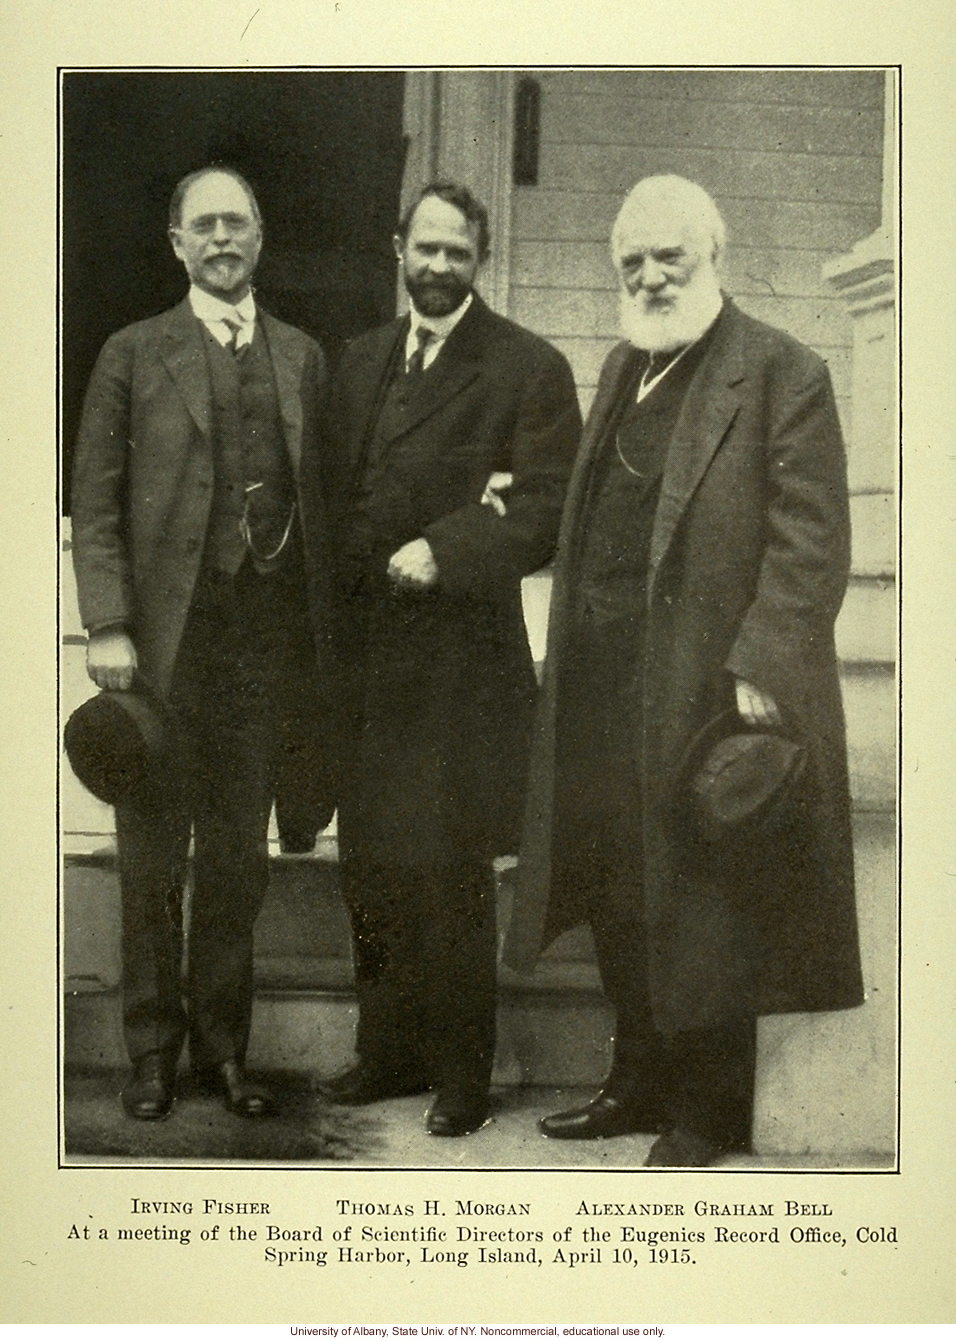 Irving Fisher, T.H. Morgan, and Alexander Graham Bell at Eugenics Record Office Board Meeting, April 10, 1915, Eugenical News (vol. 14:8)